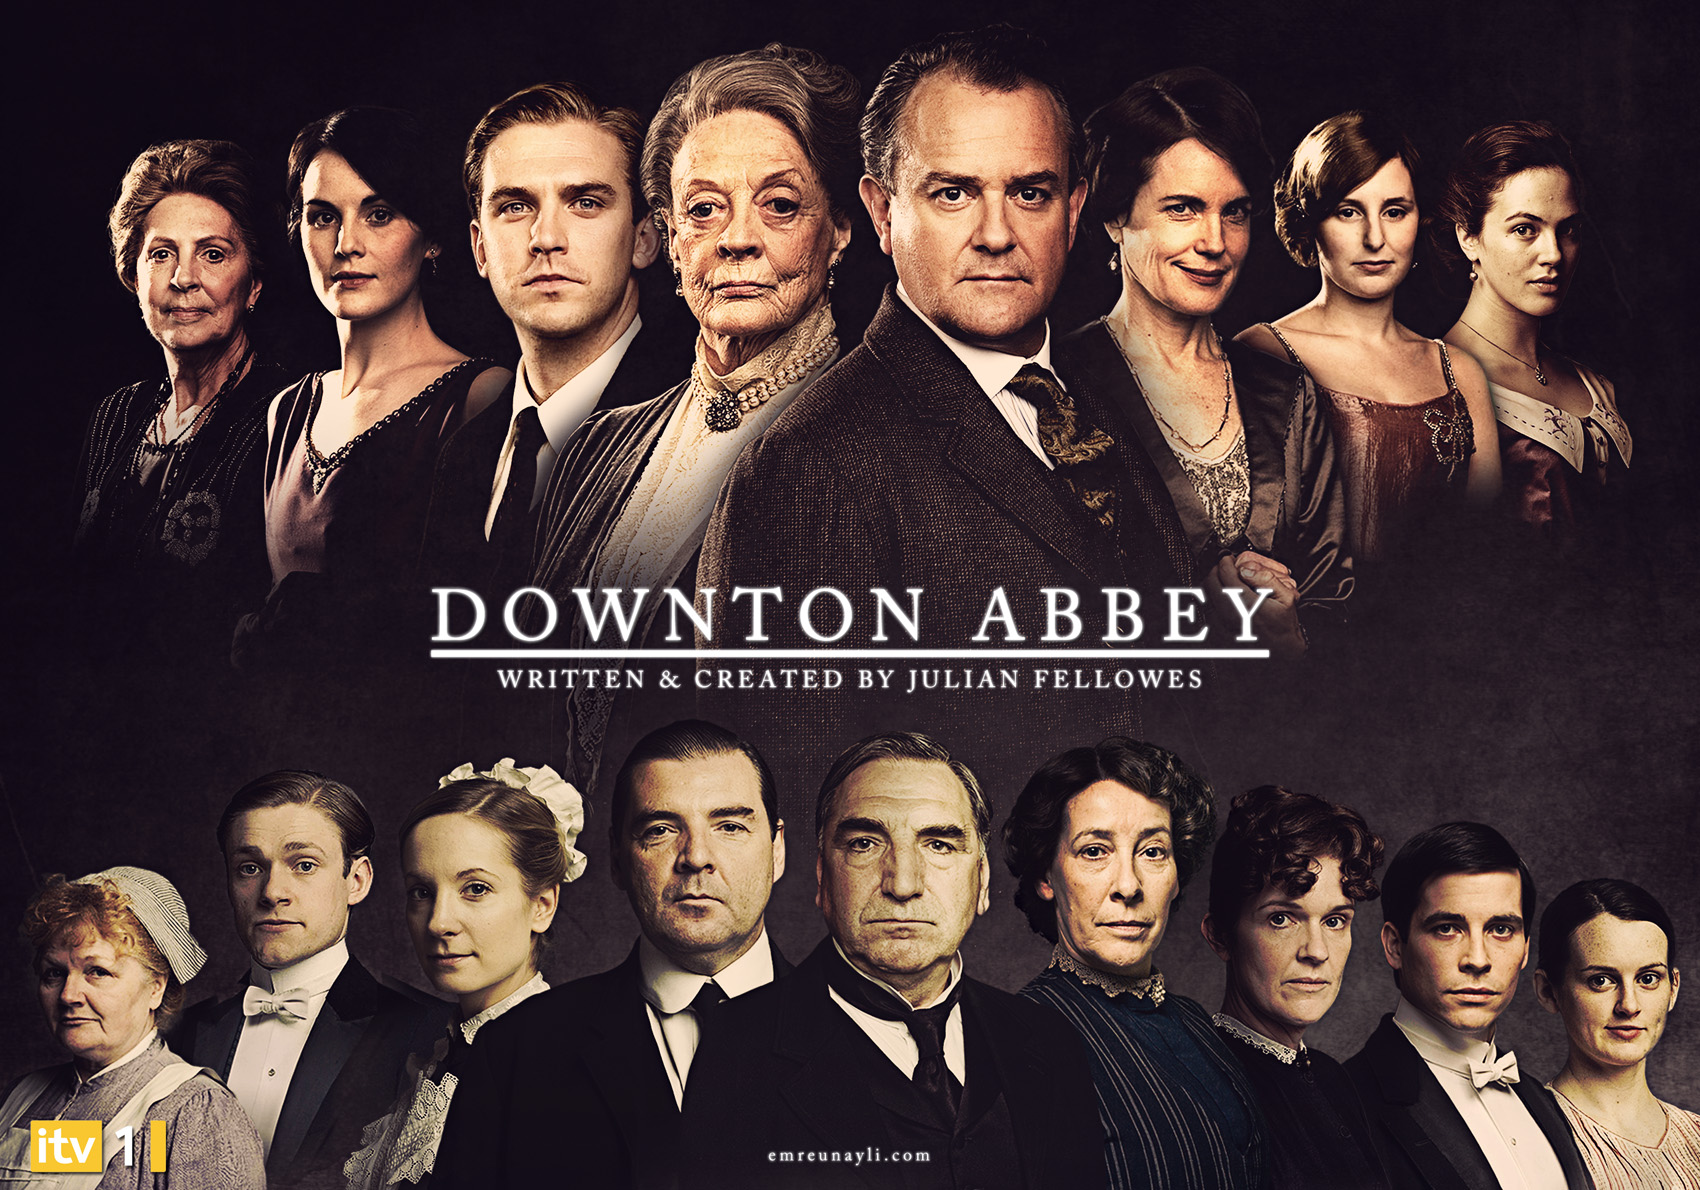 Downton Abbey: actors and roles